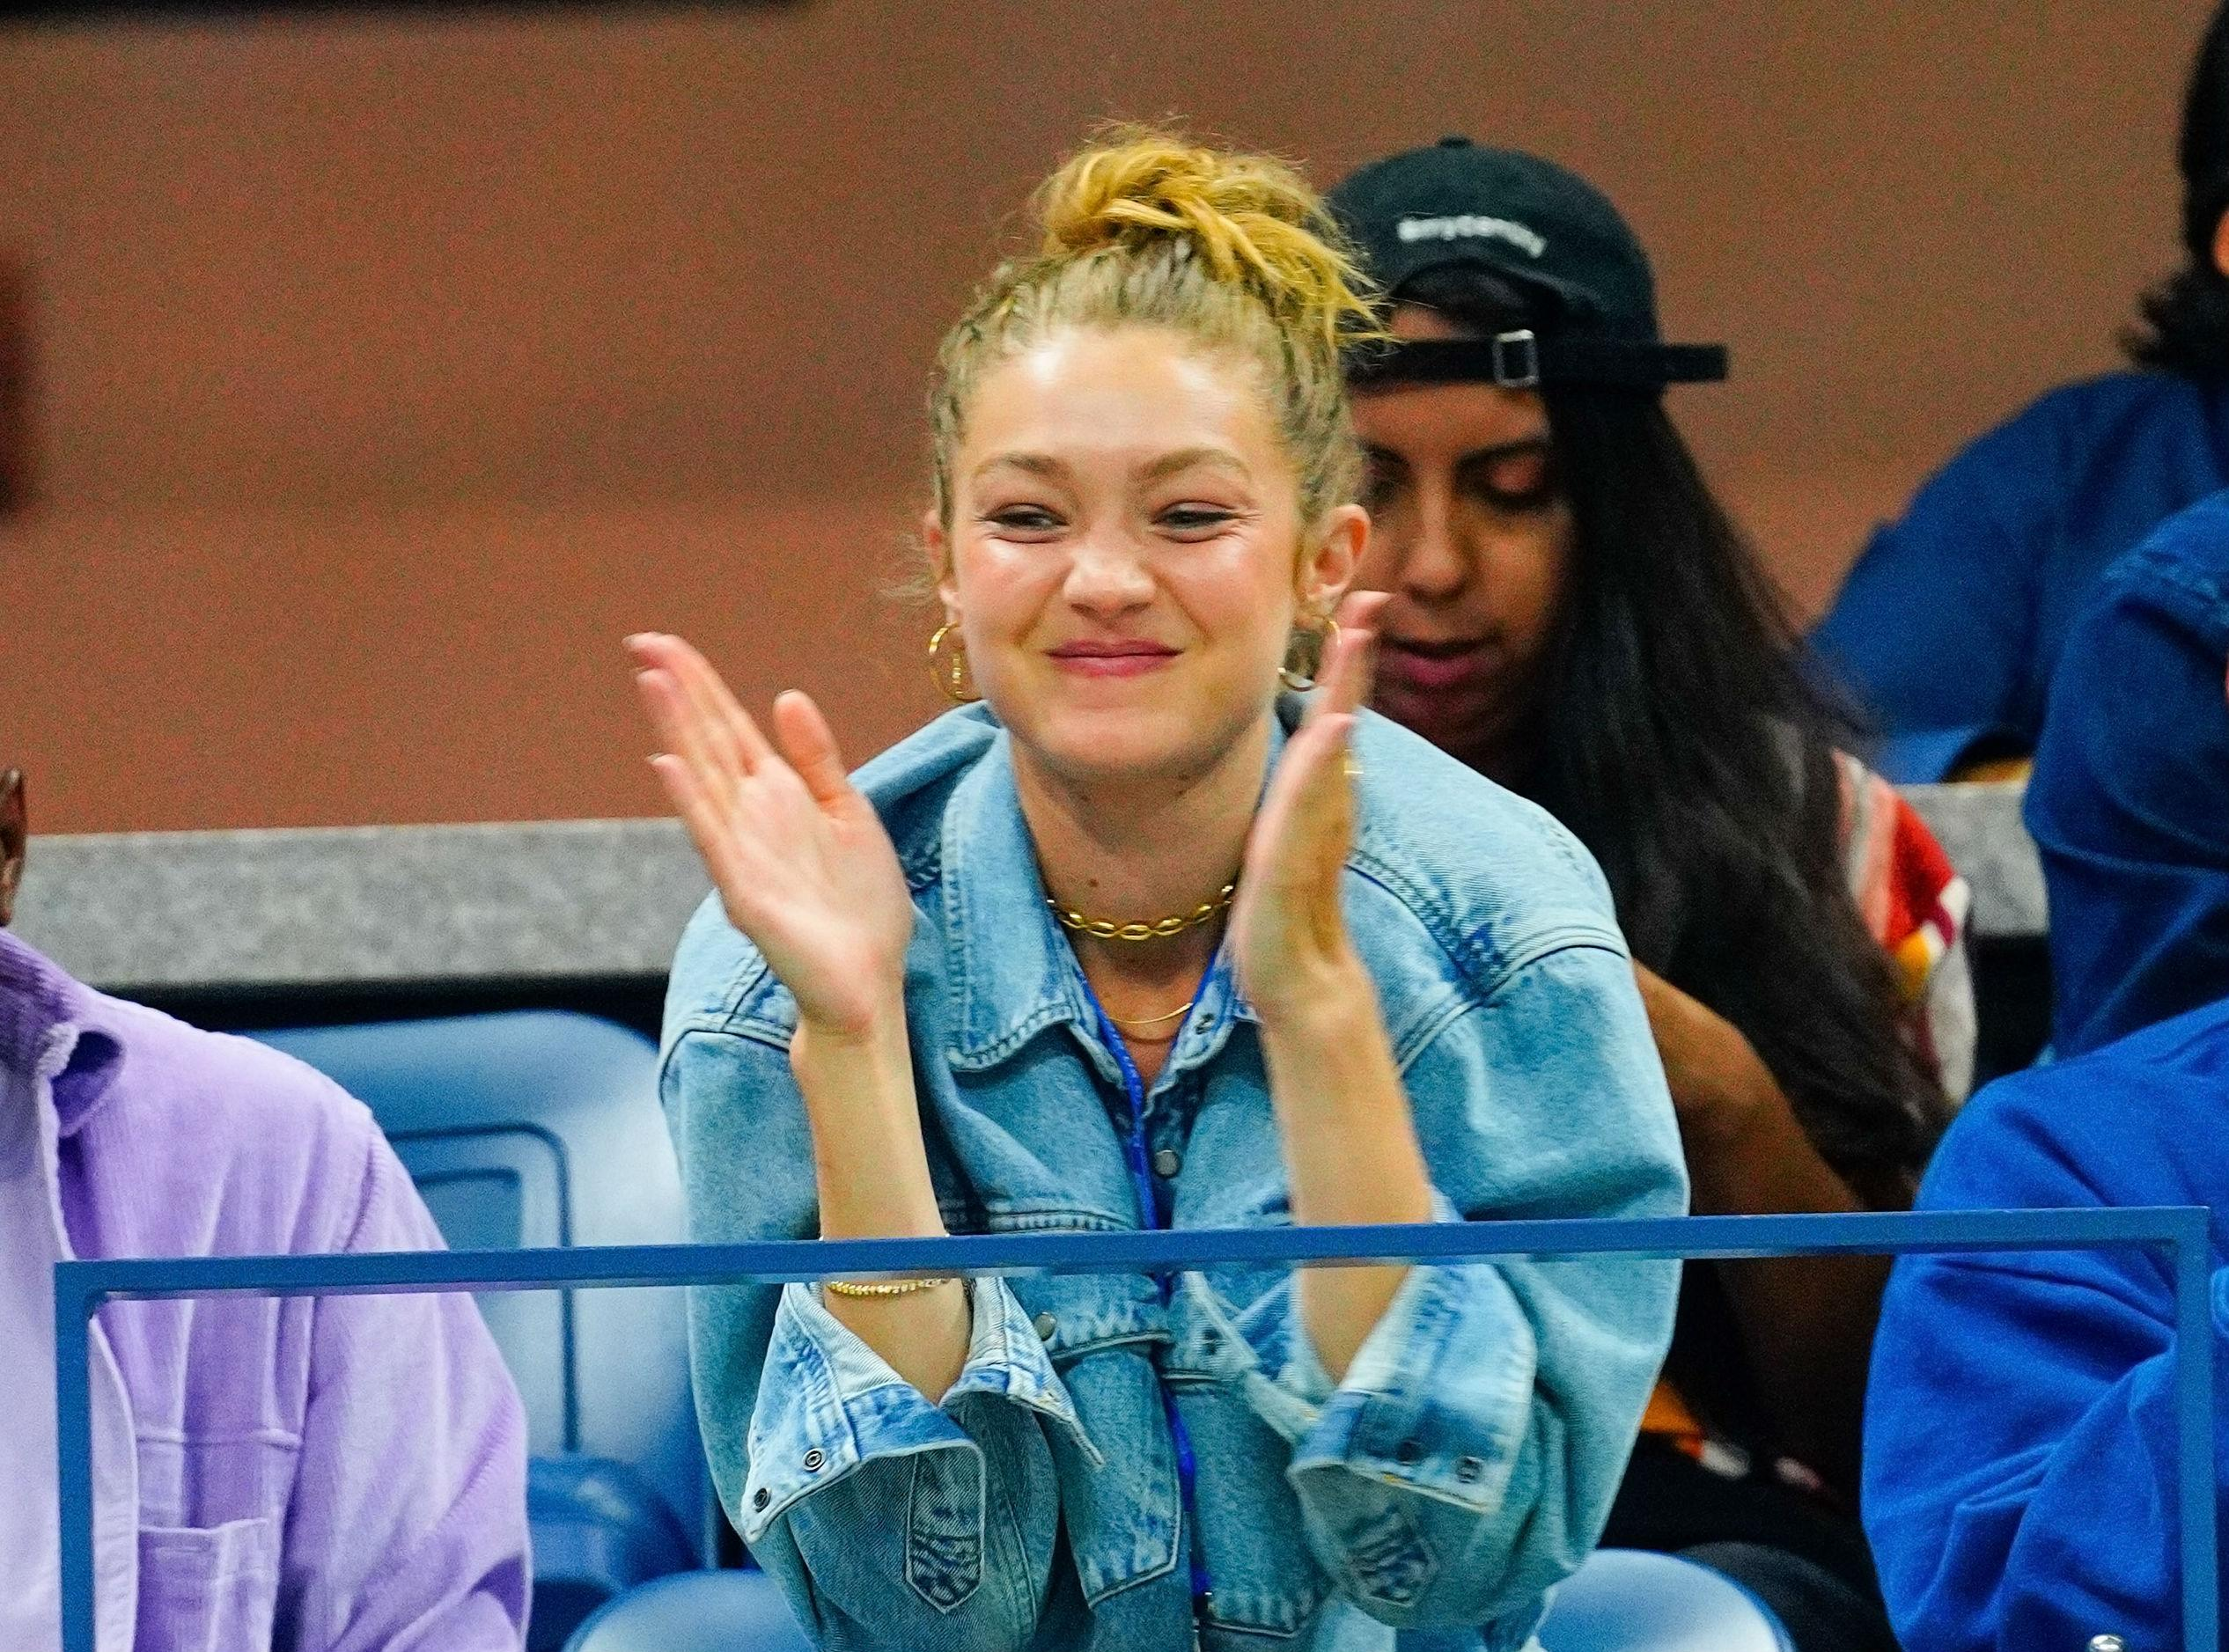 Gigi Hadid encourages fans to 'vote' in American presidential election